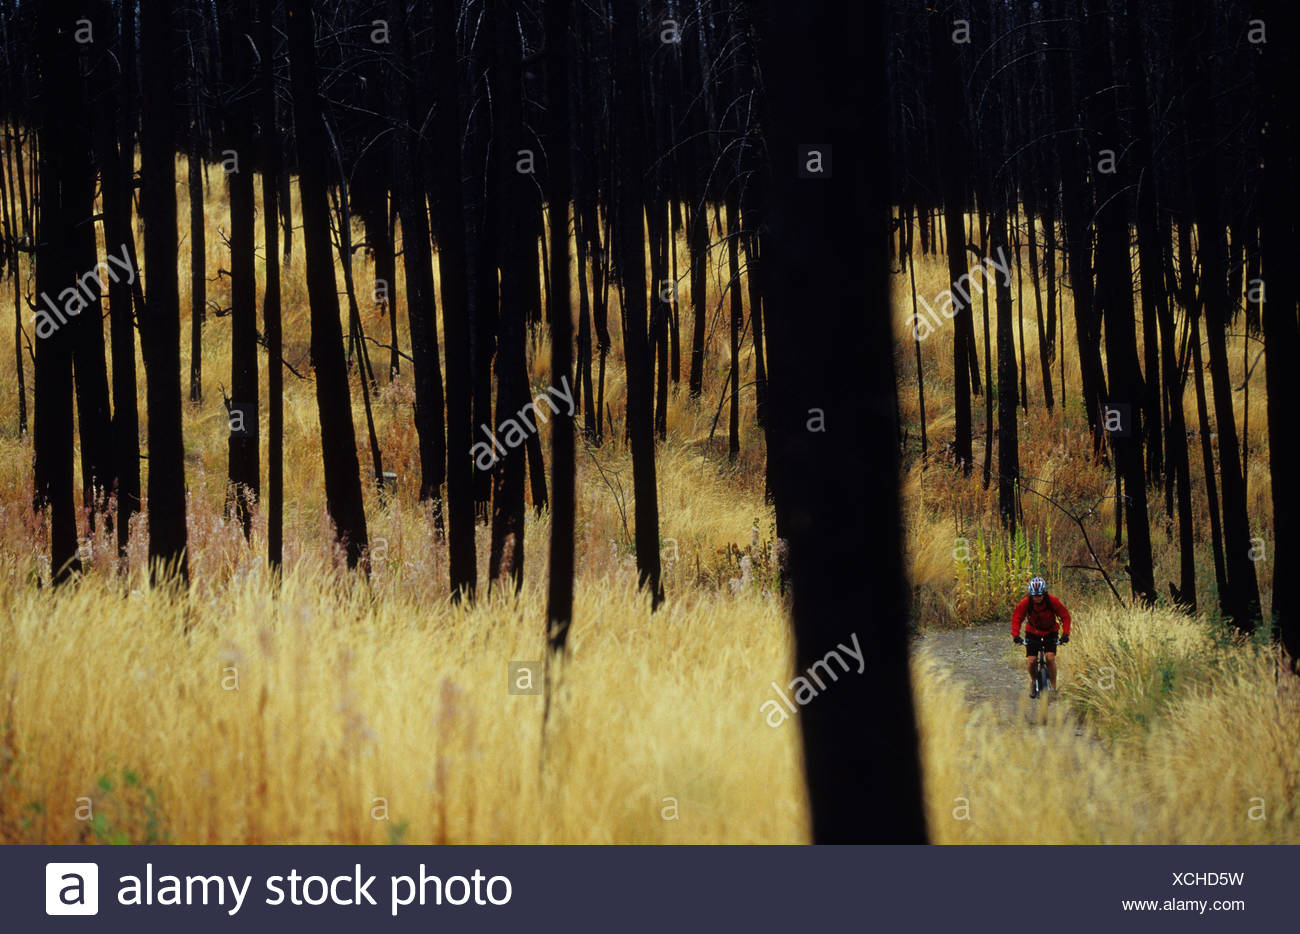 A woman on her mountain bike enjoying the trails in the burnt forest in Kelowna, British Columbia, Canada - Stock Image